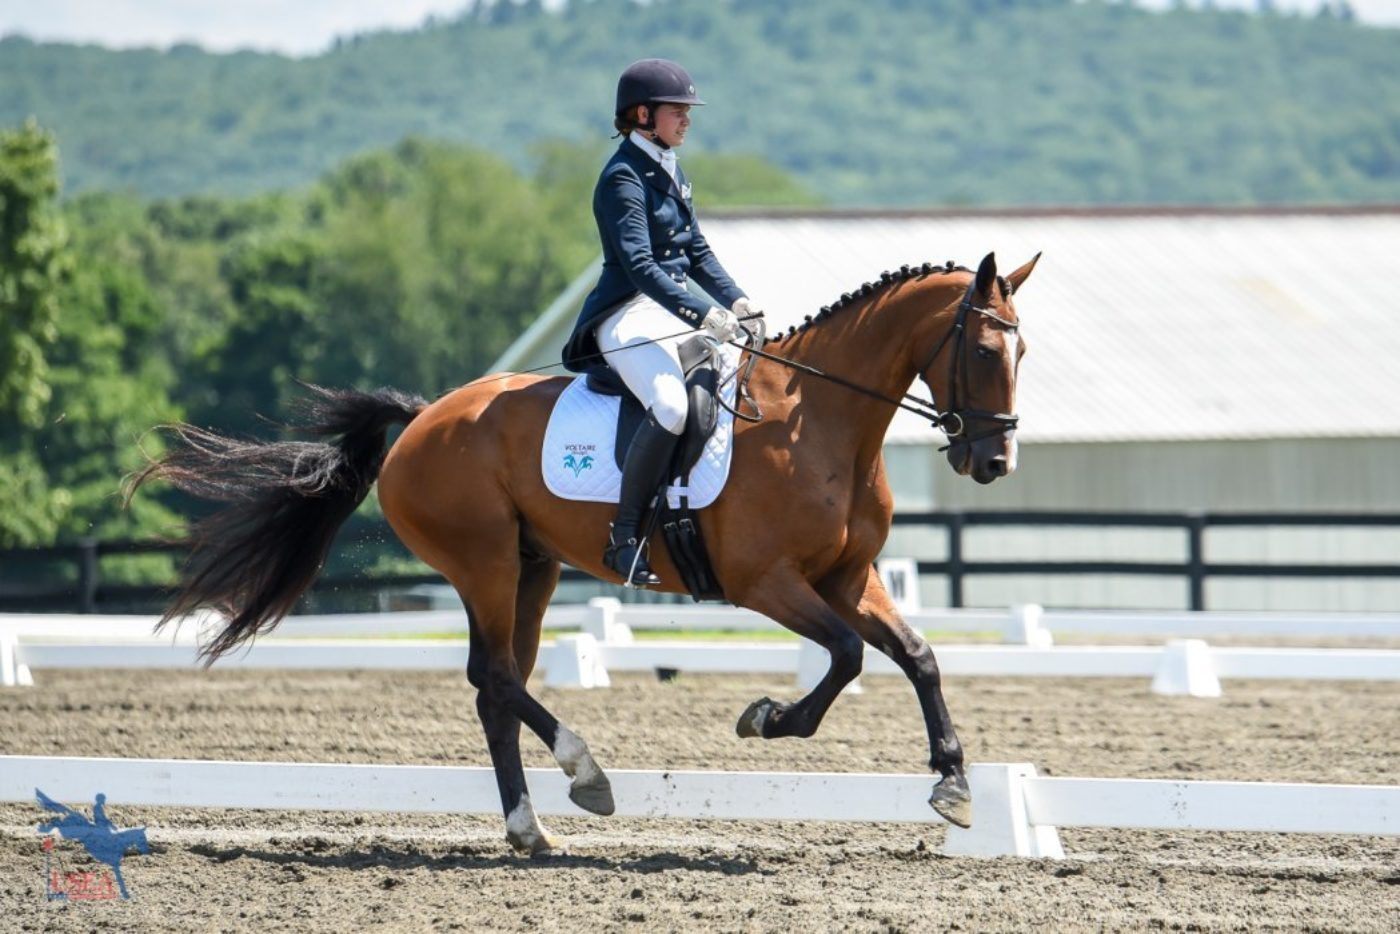 13thT - Jules Ennis and Cooley O - 34.1